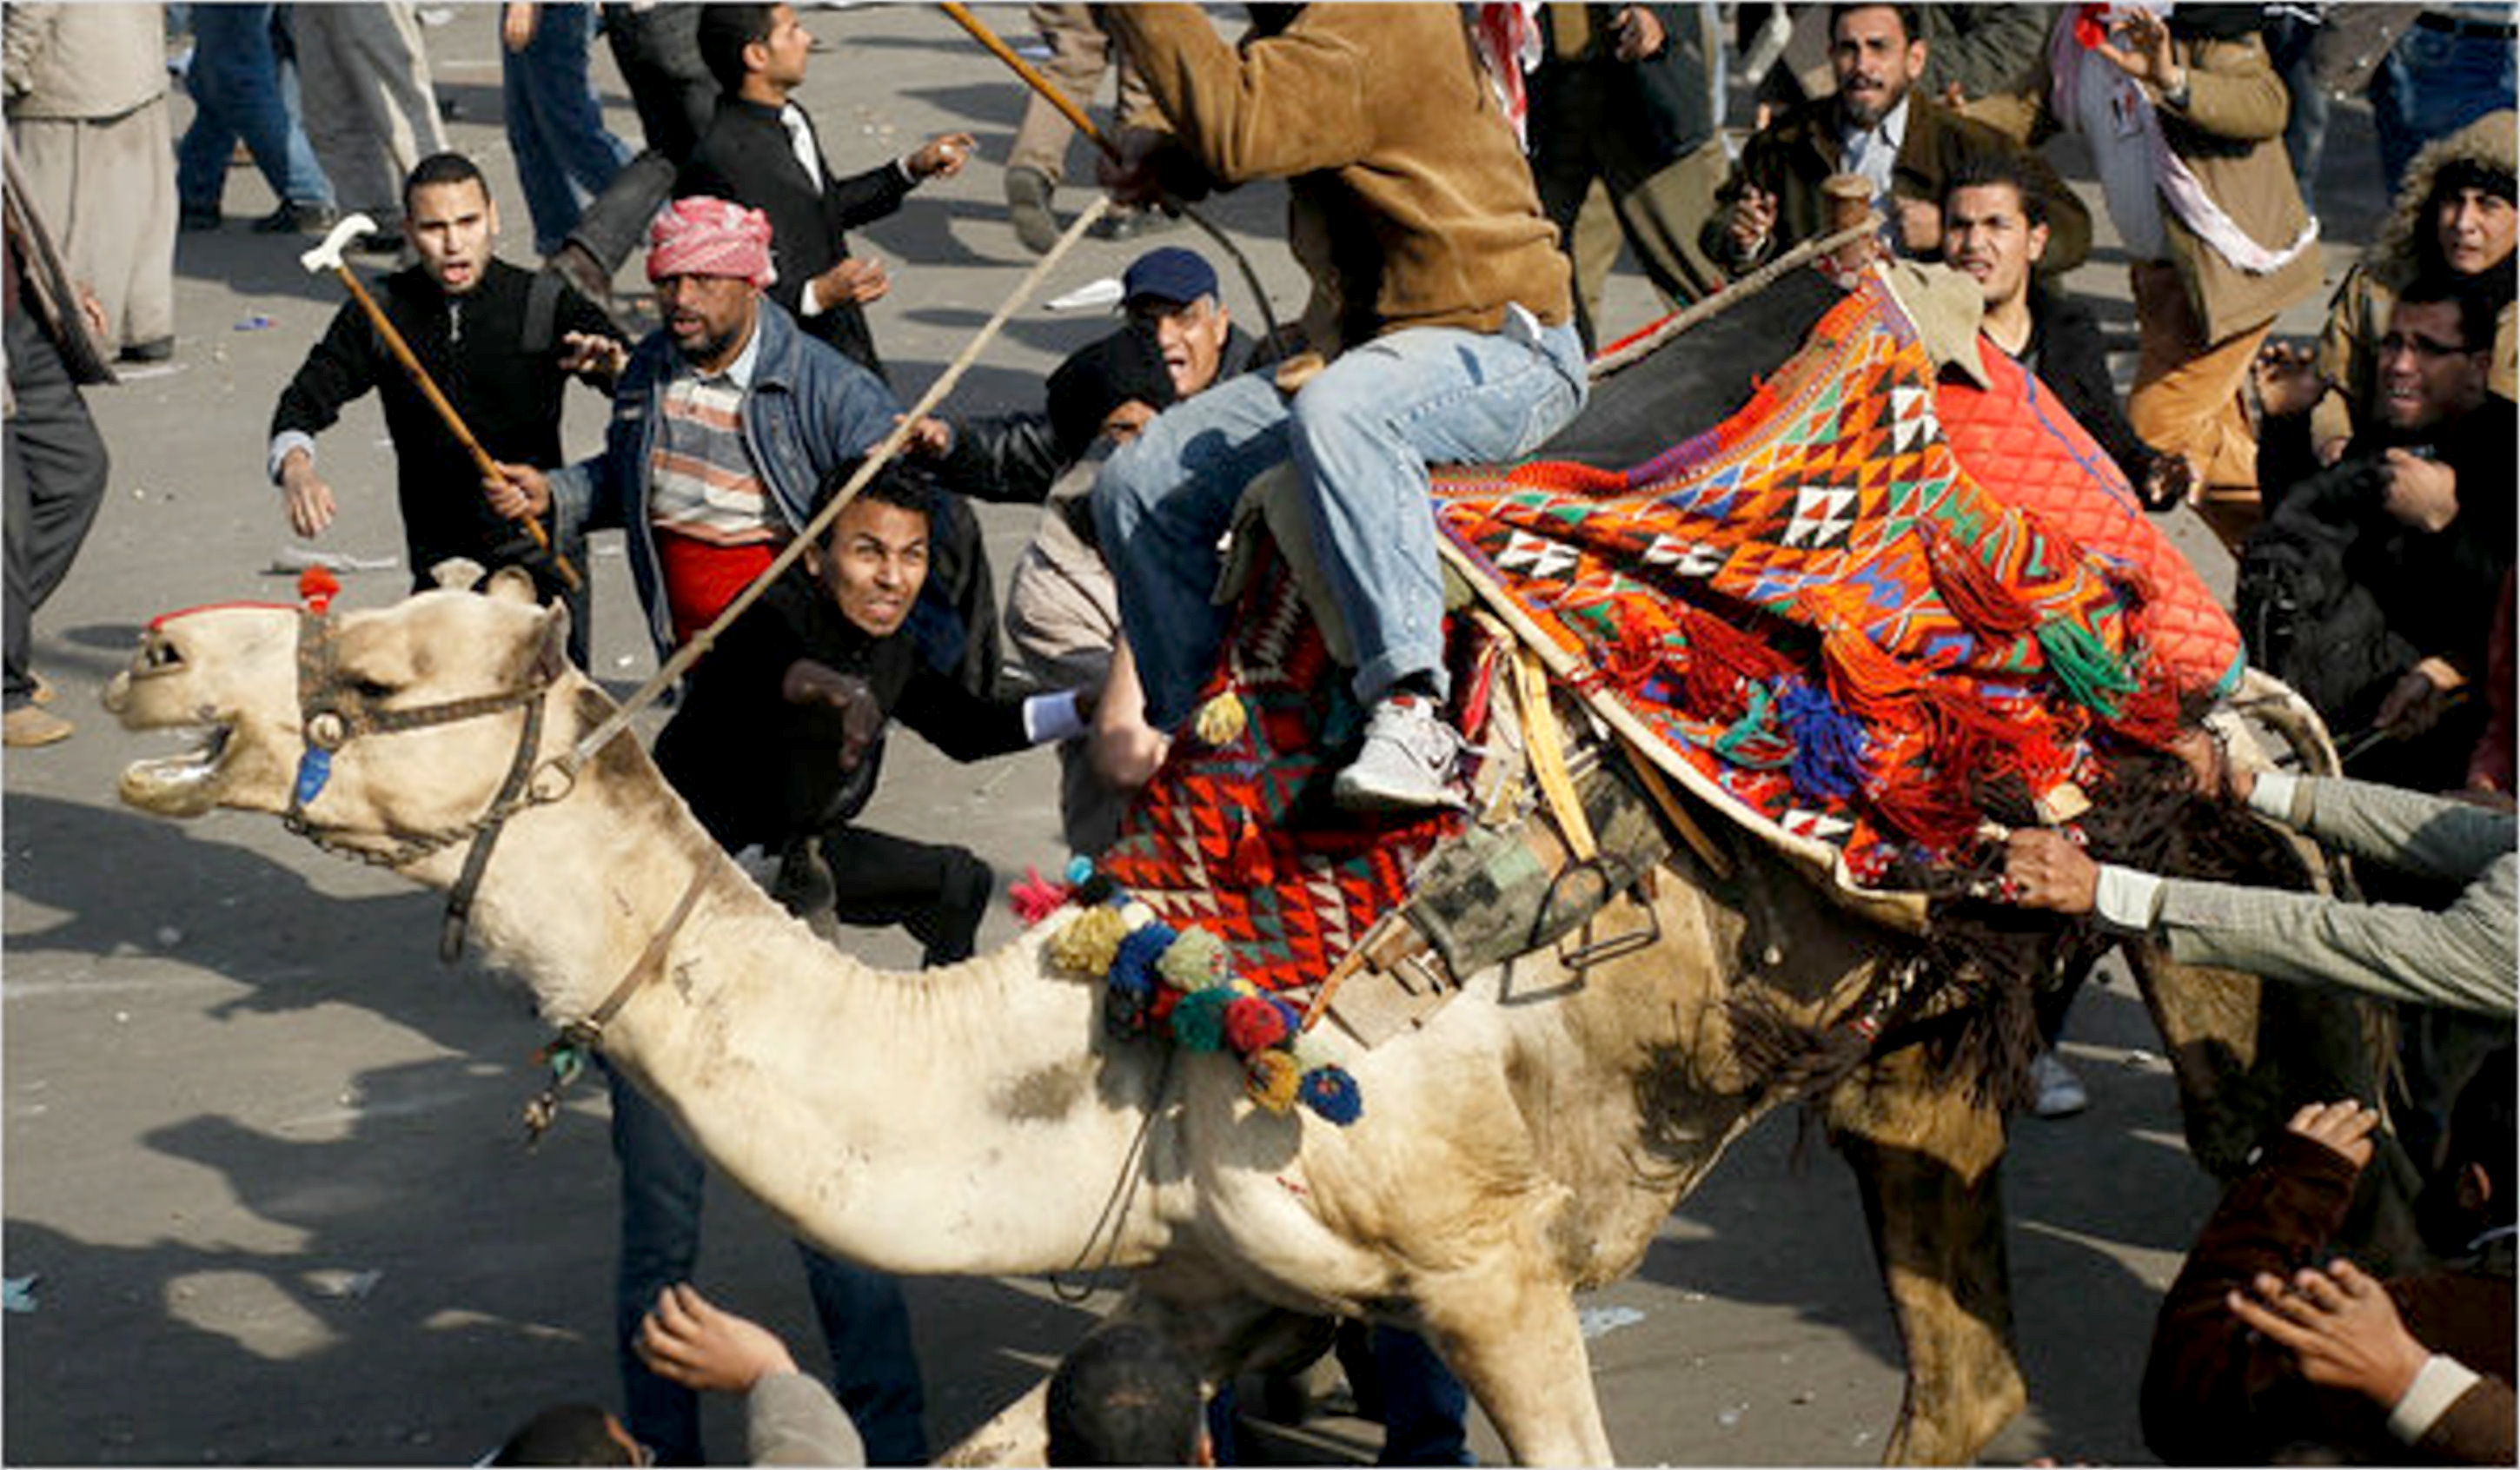 Egyptian Revolution Battle of the Camel